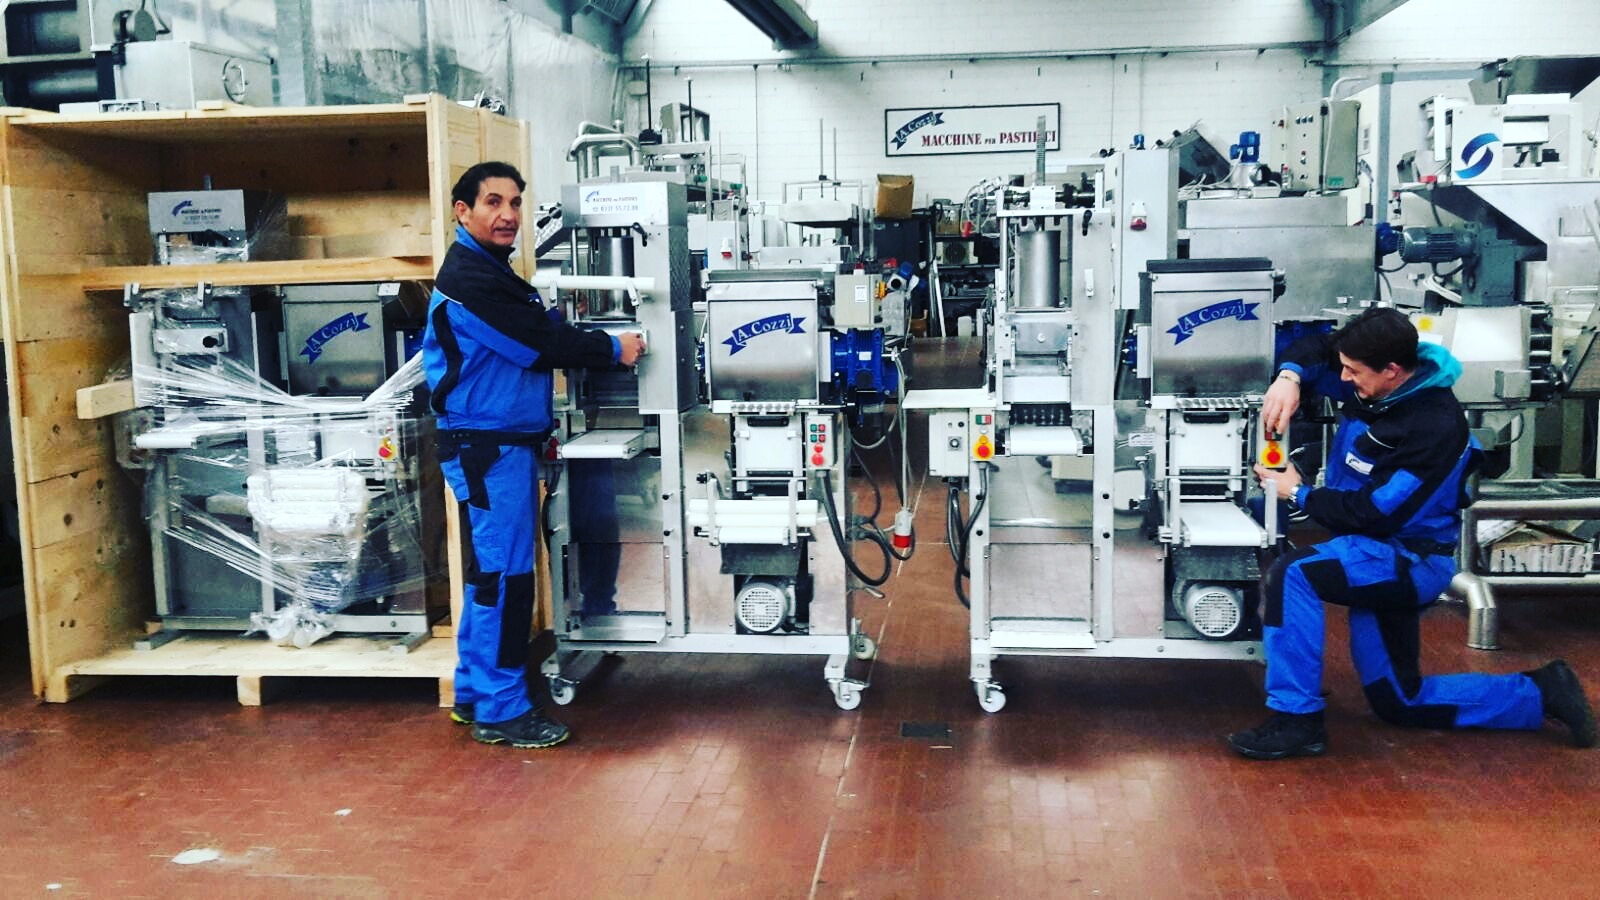 The technicians of Aldo Cozzi Sas to the production of combined machines for fresh pasta - 4 in 1